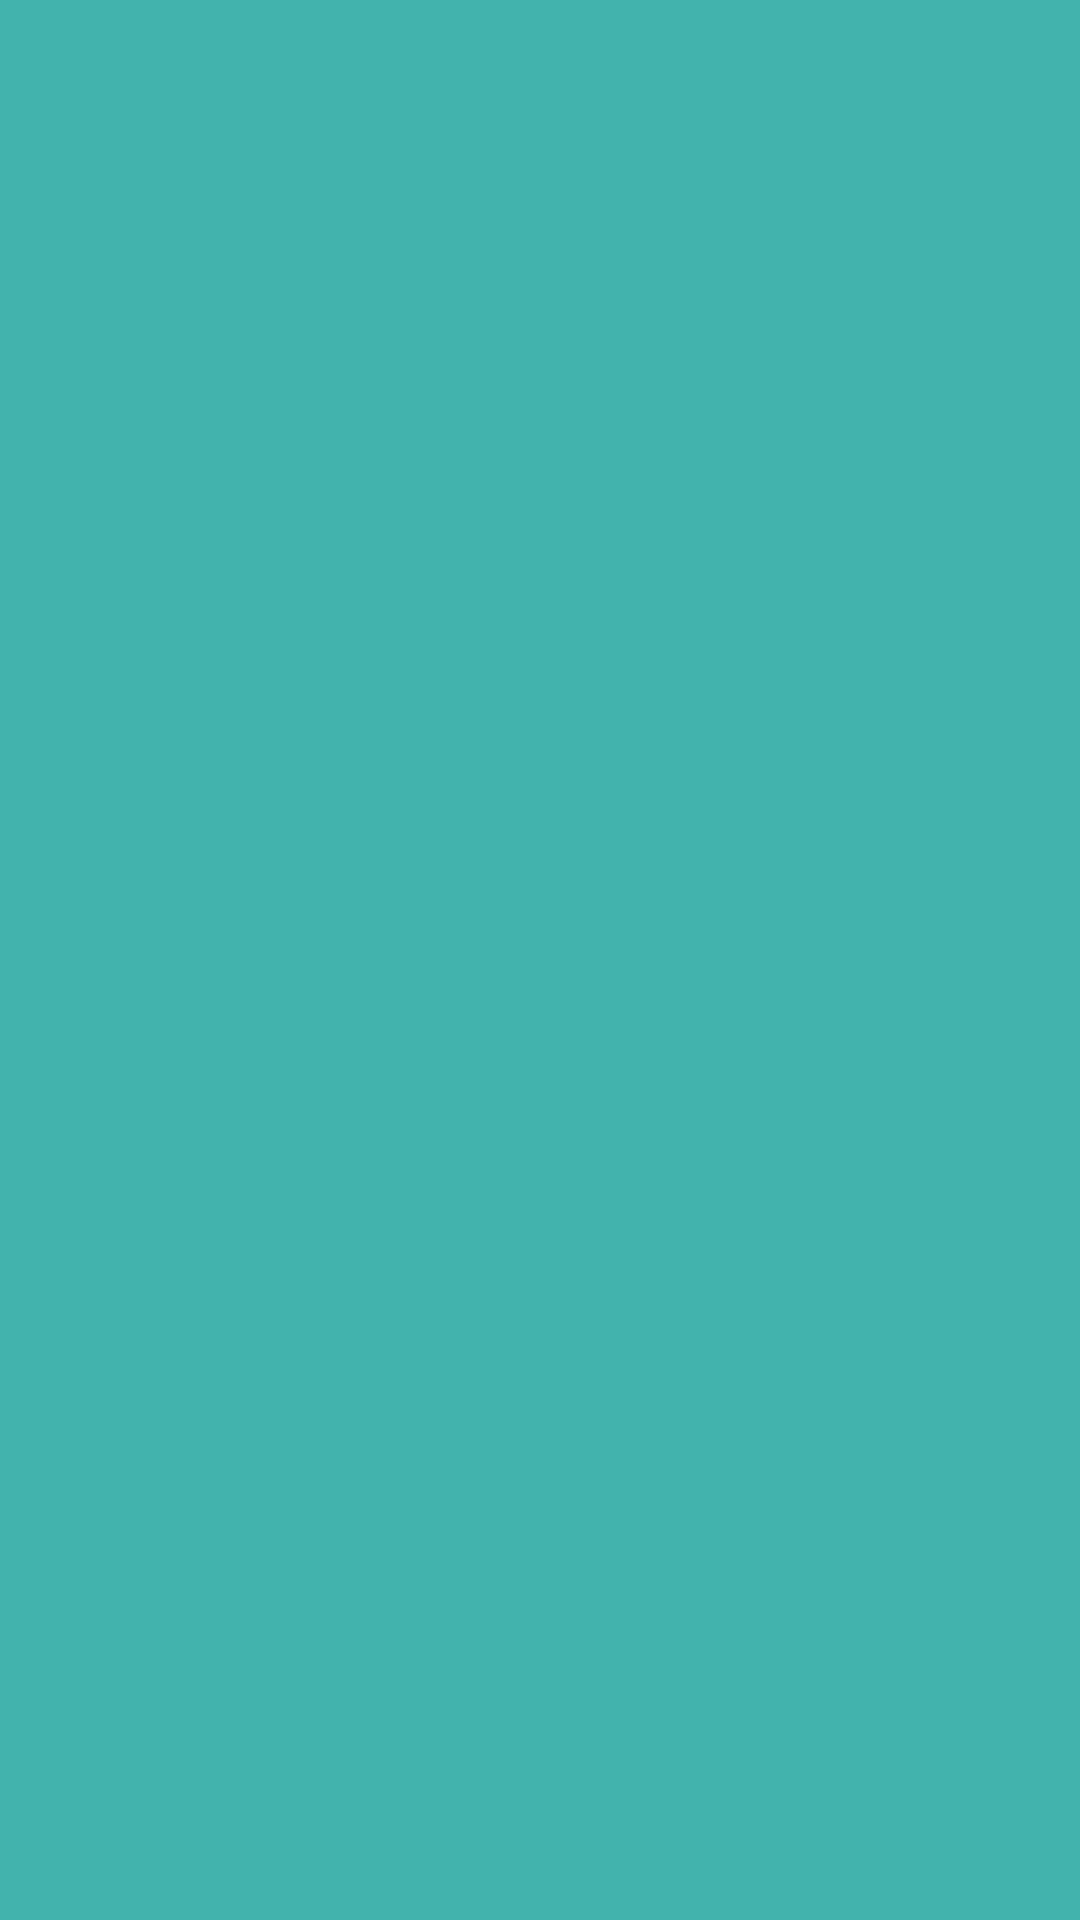 1080x1920 Verdigris Solid Color Background